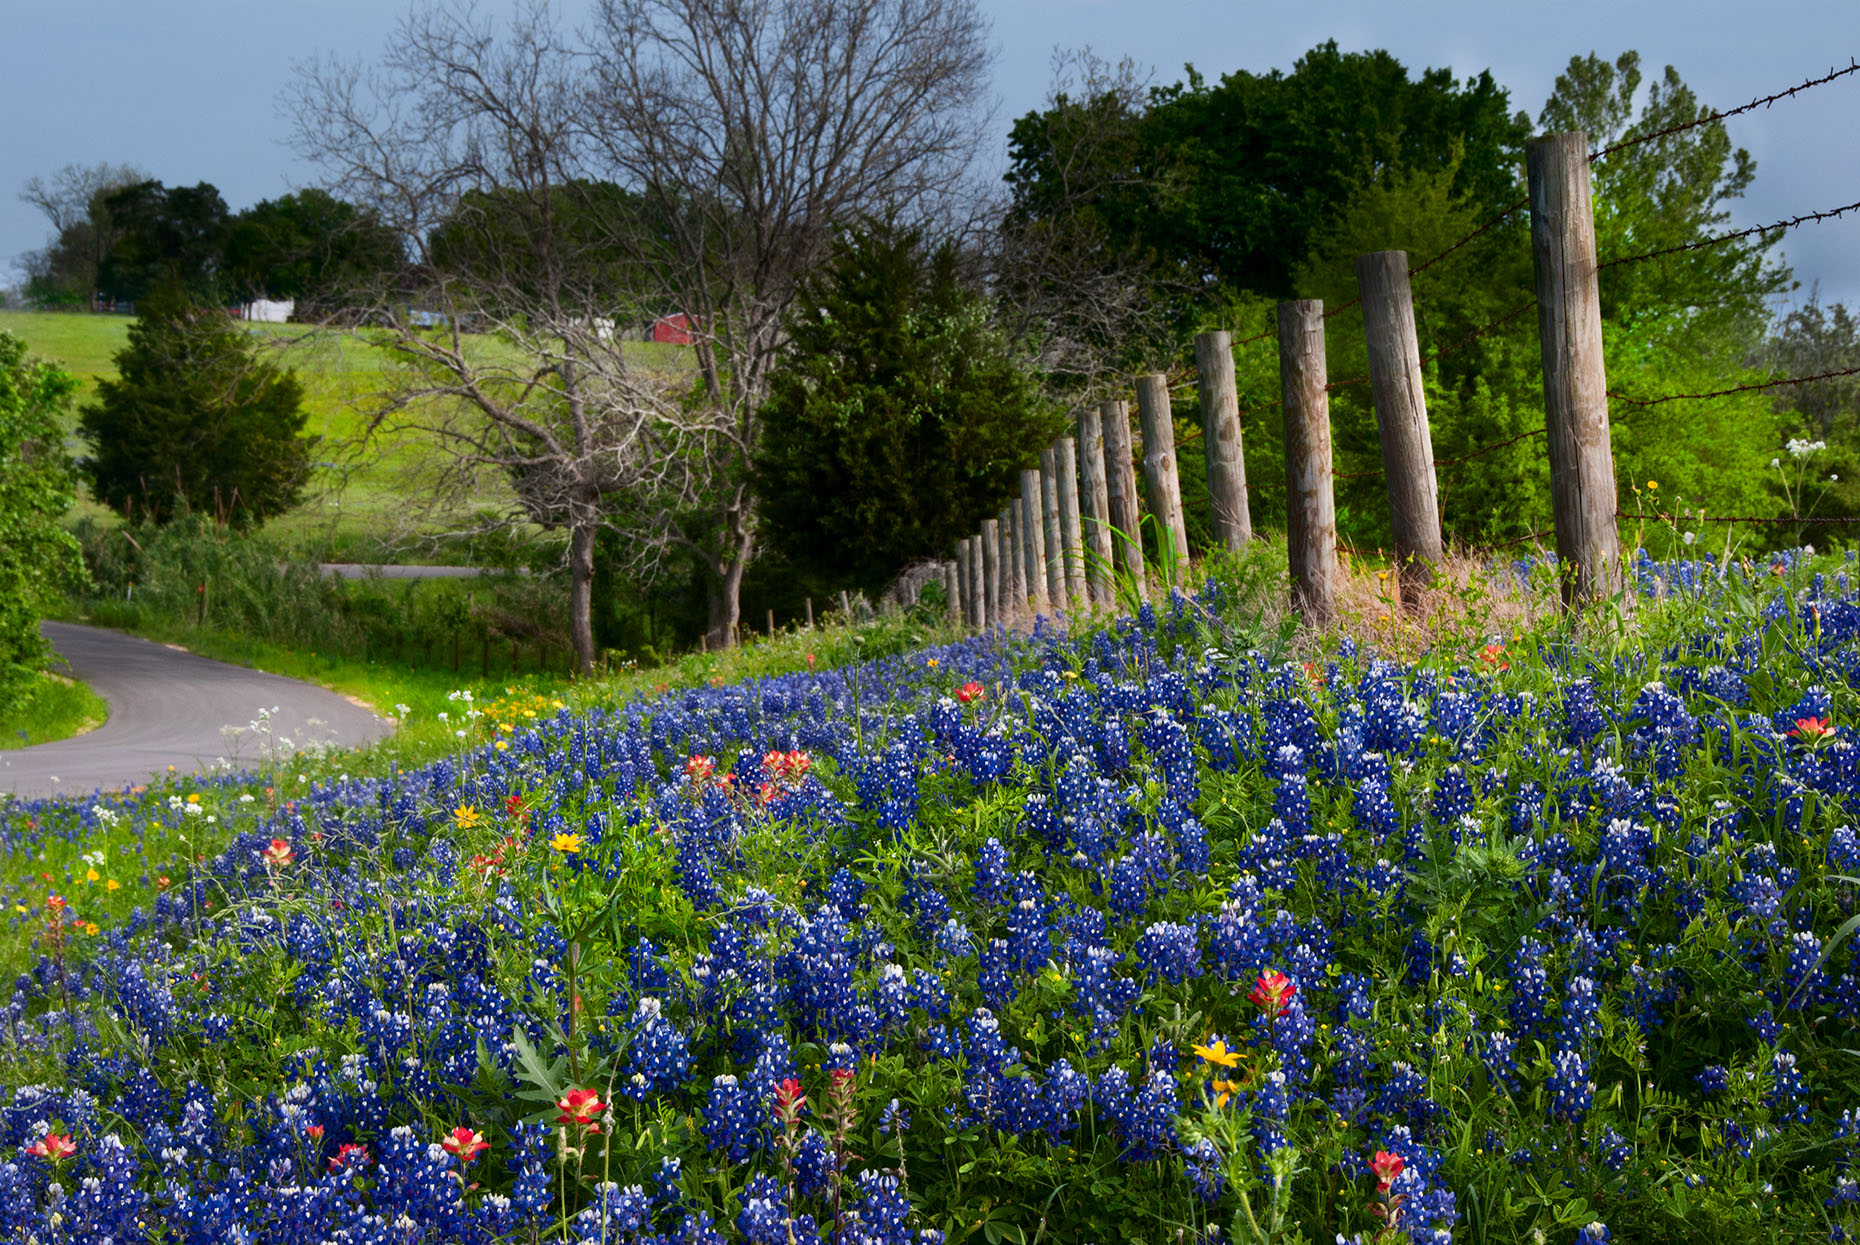 bluebonnets-wildflowers-fence-road-Texas